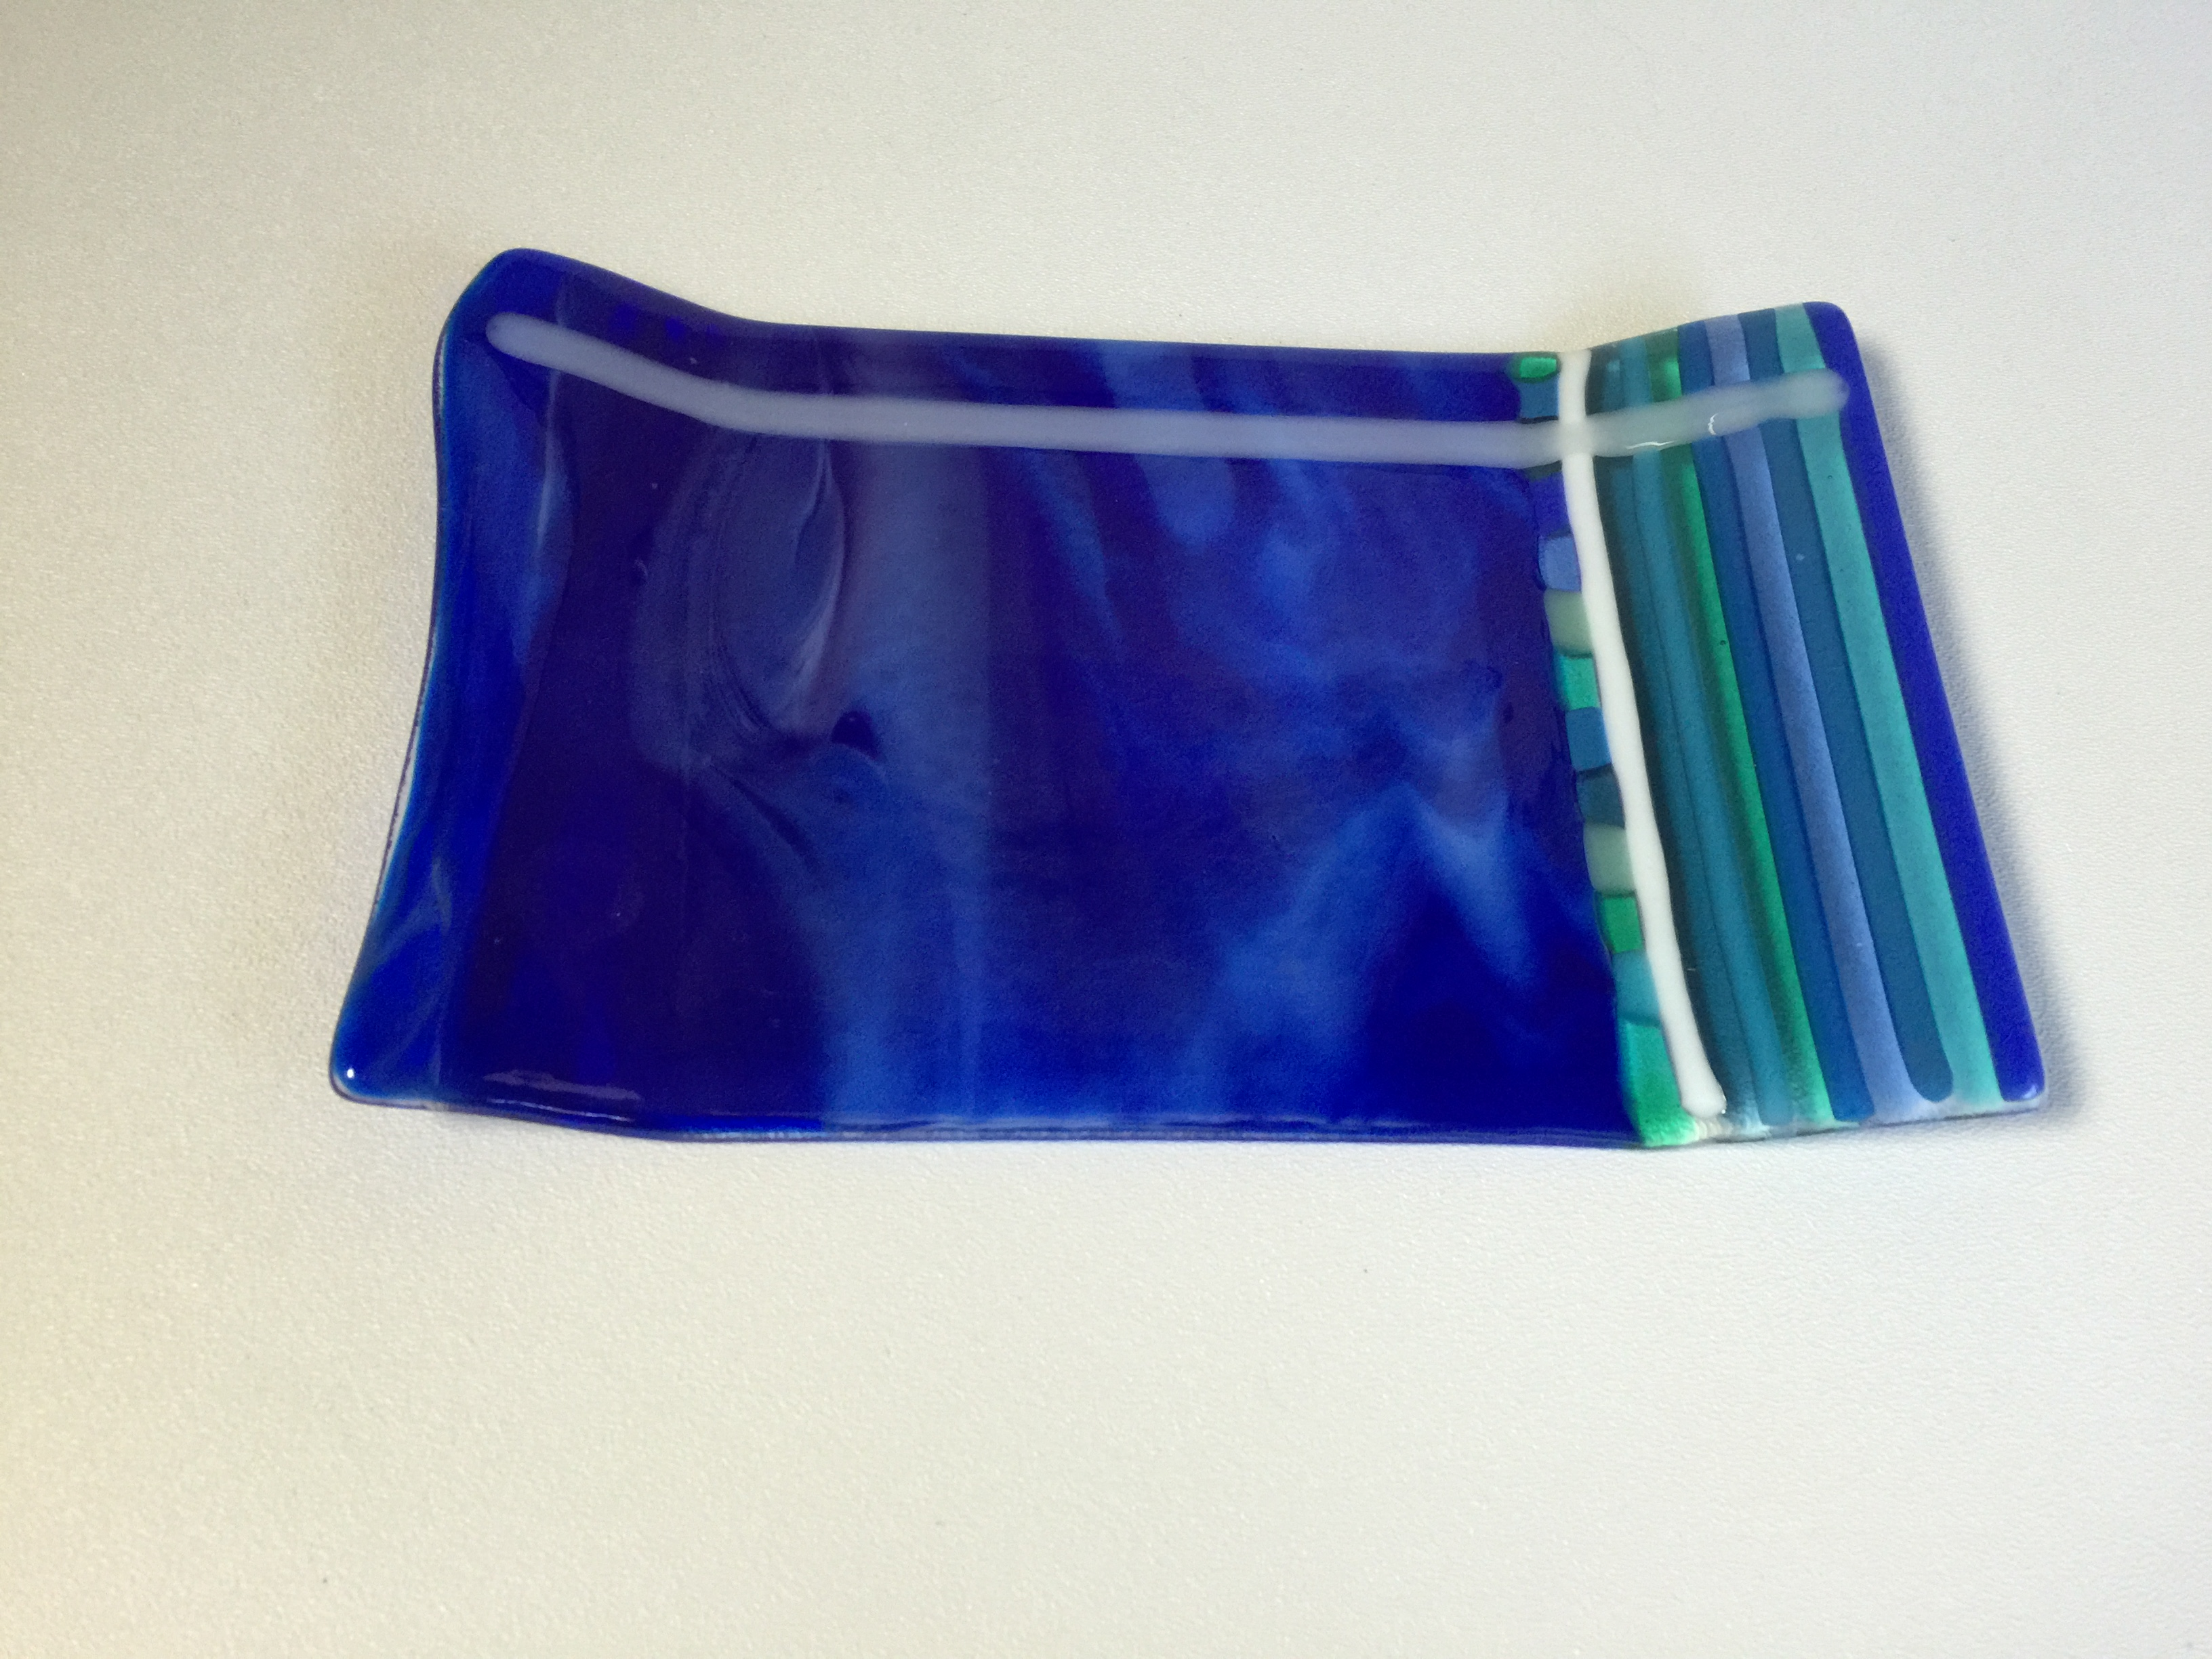 July's Fresh From the Kiln - Fusing with Rods